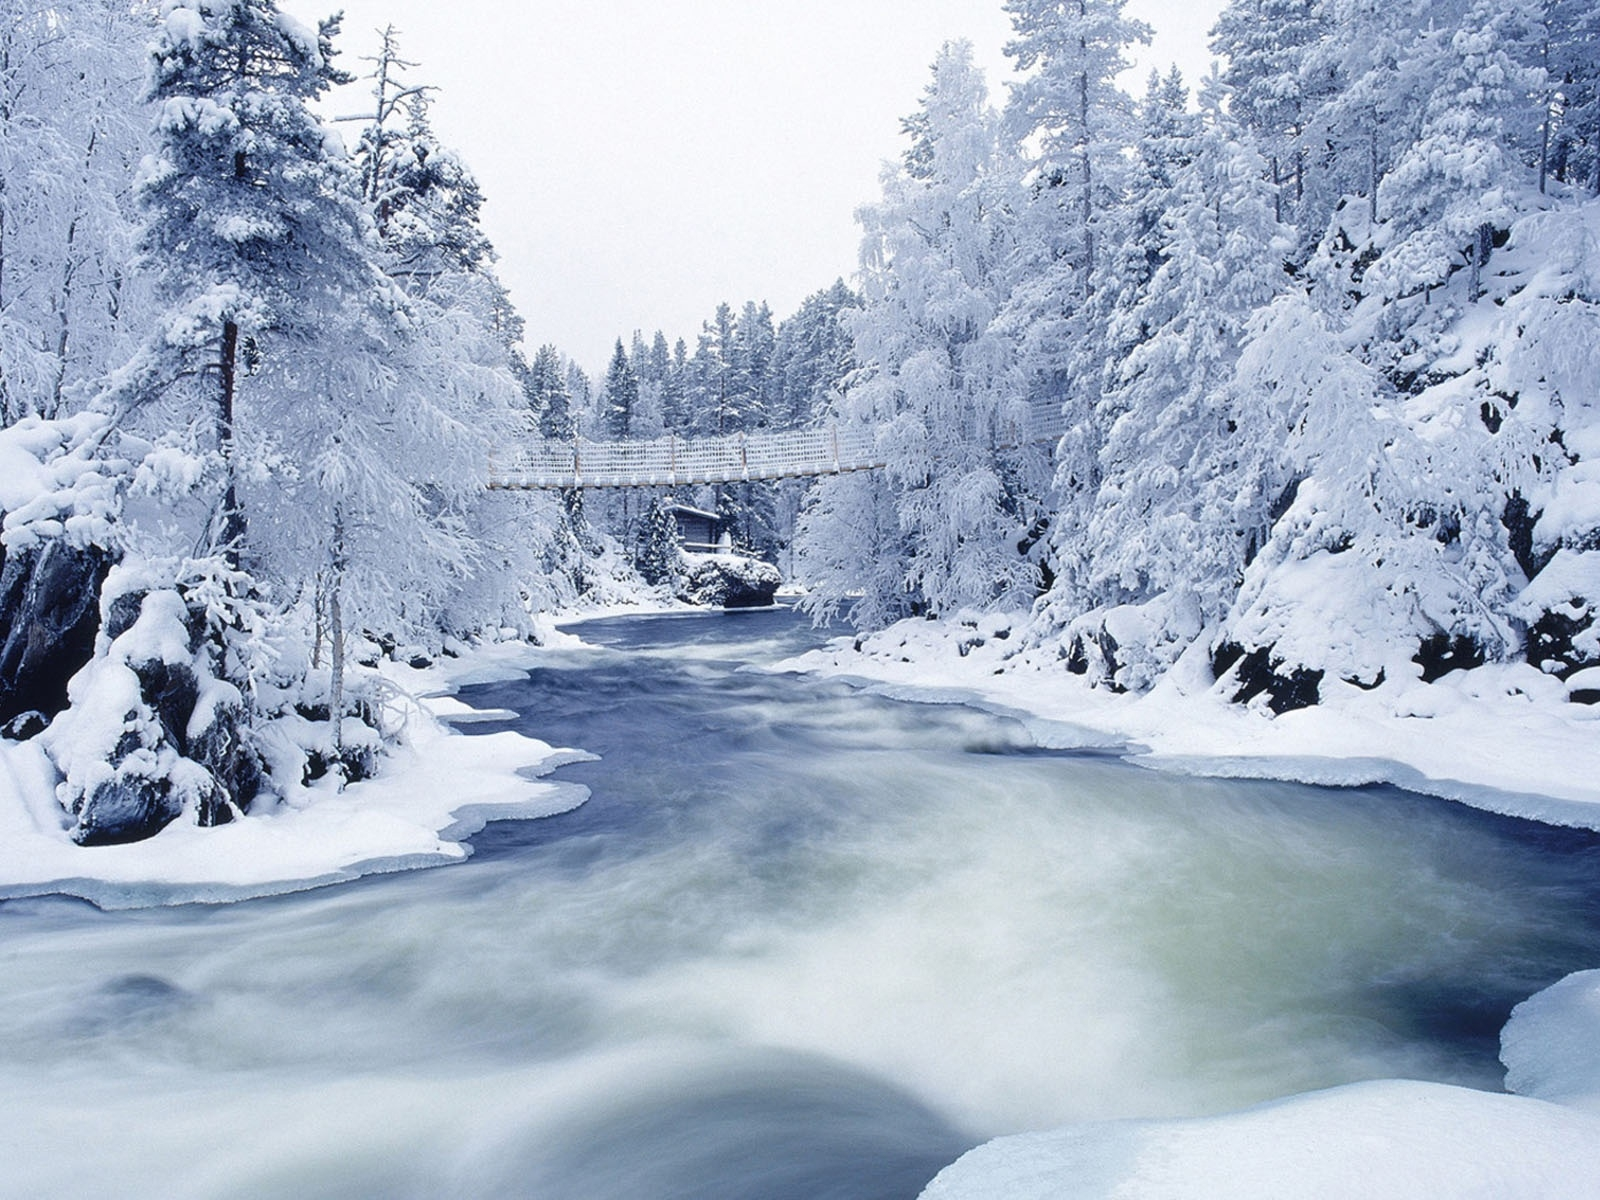 Frozen River And Trees Wallpapers